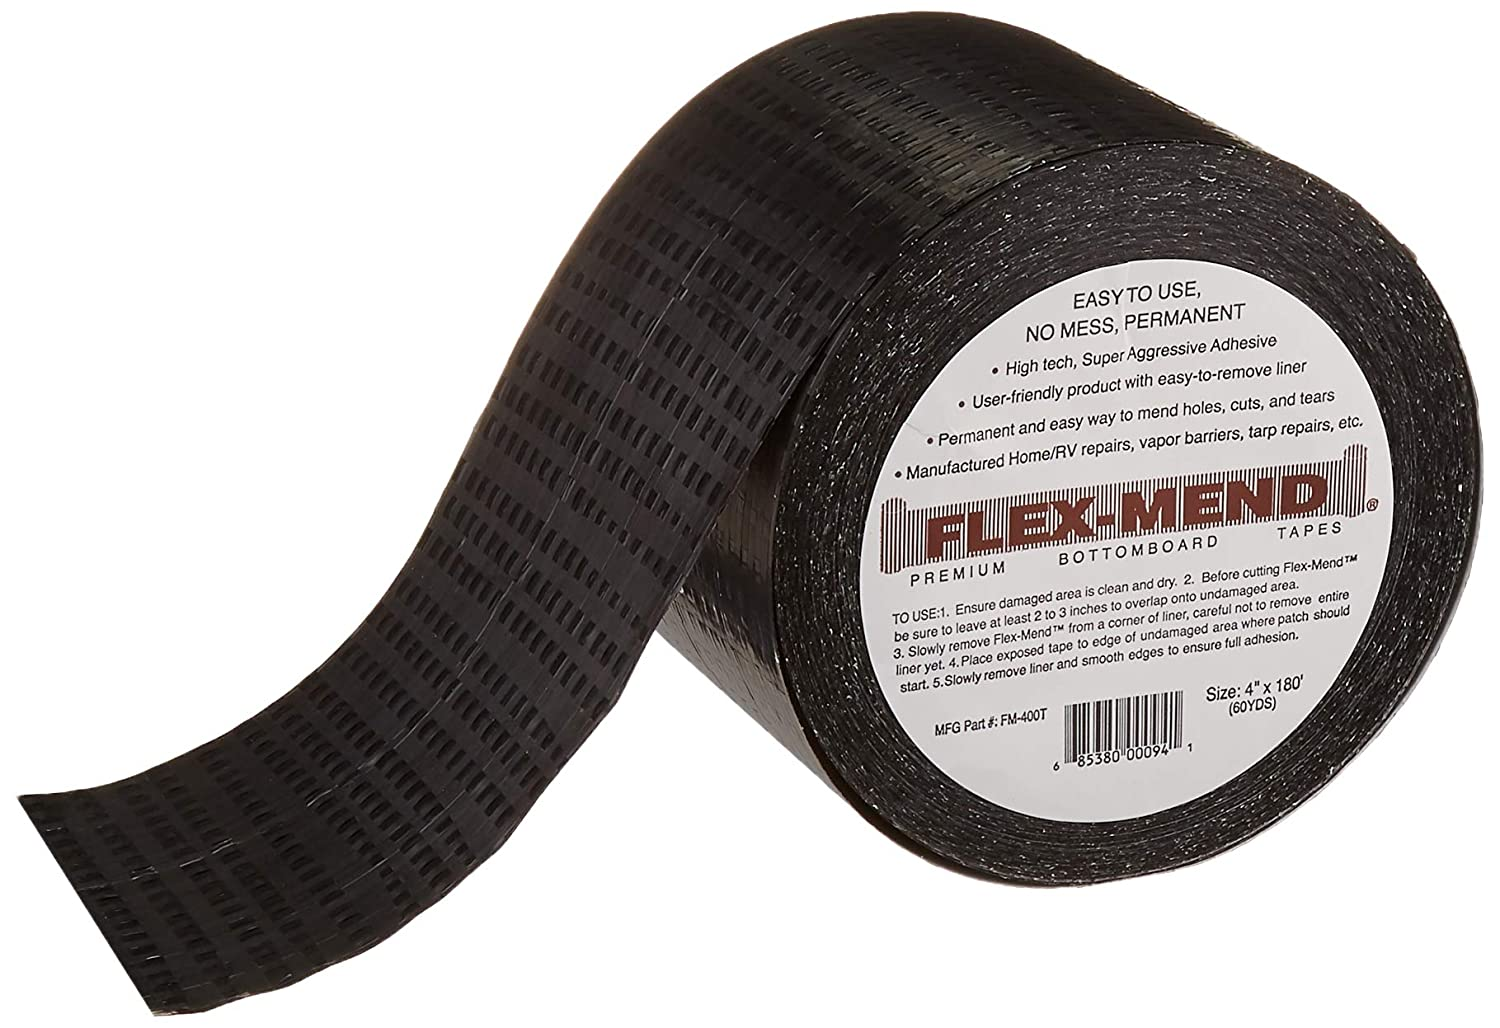 "Flex Mend FM-400T Belly Pan Repair Bottom Board Repair Tape, 4"" x 180'"